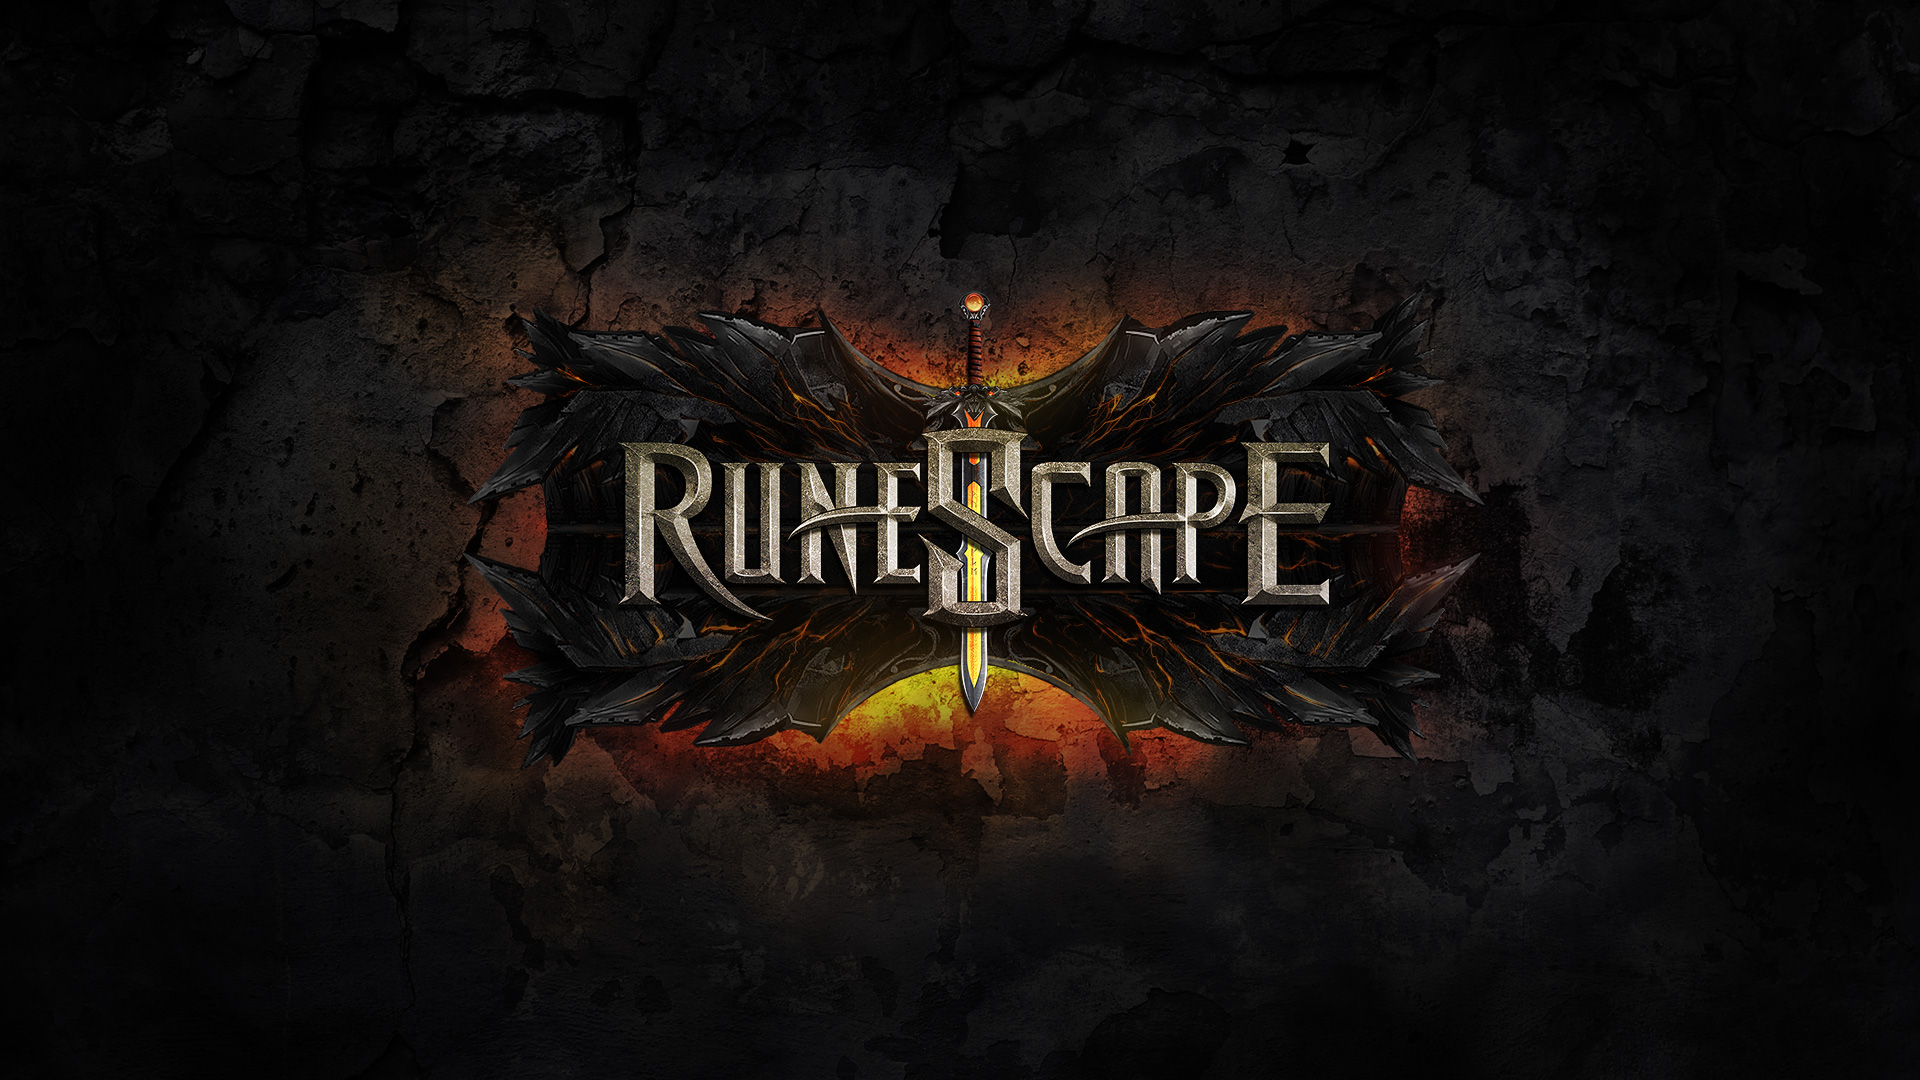 50] Old School Runescape Wallpaper on WallpaperSafari 1920x1080